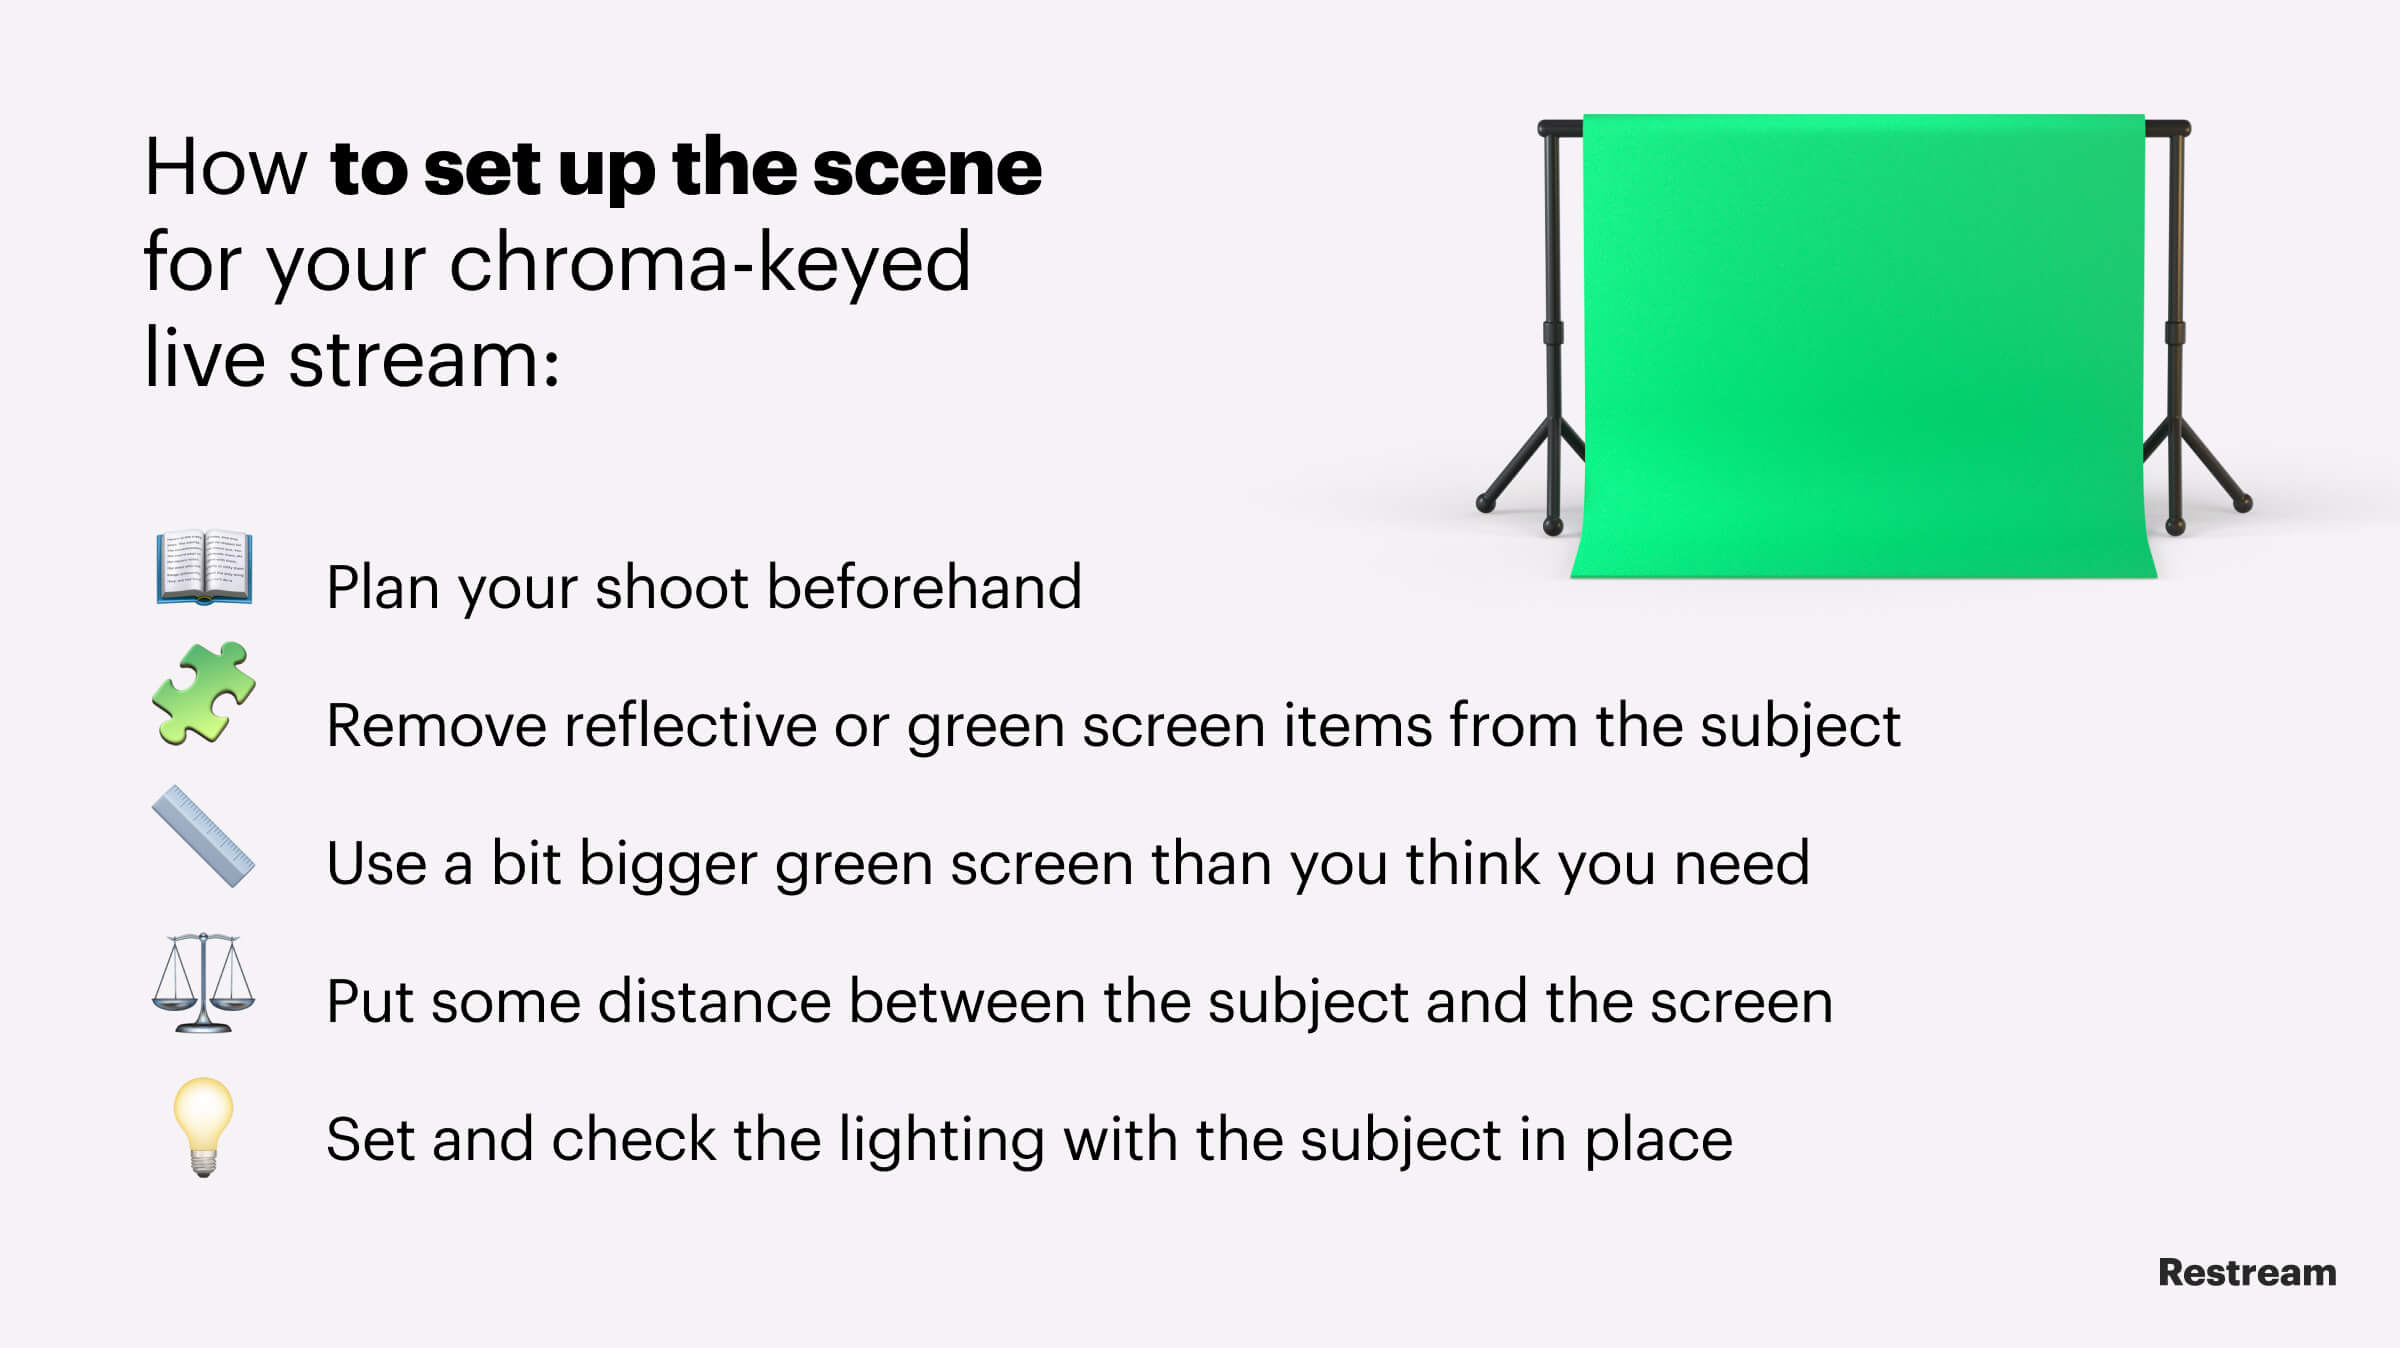 Checklist – How to set up the scene for your chroma-keyed live stream